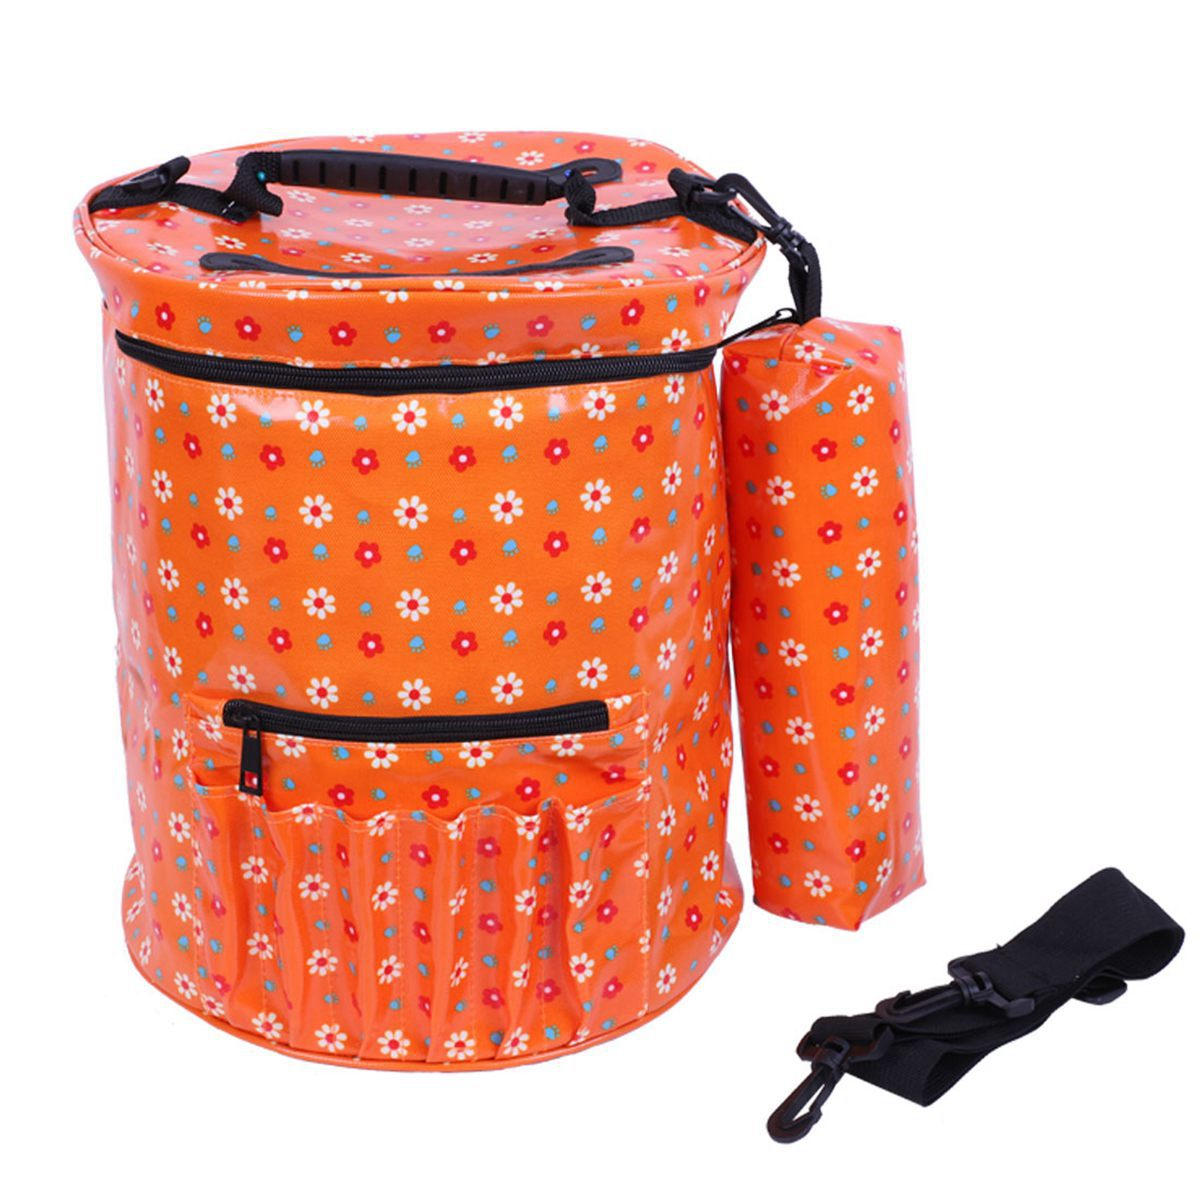 AFBC Yarn Bag,Bloomma Waterproof Canvas Knitting Bag with Shoulder Strap Crochet and Needles Hooks Accessories Wool Storage Ba